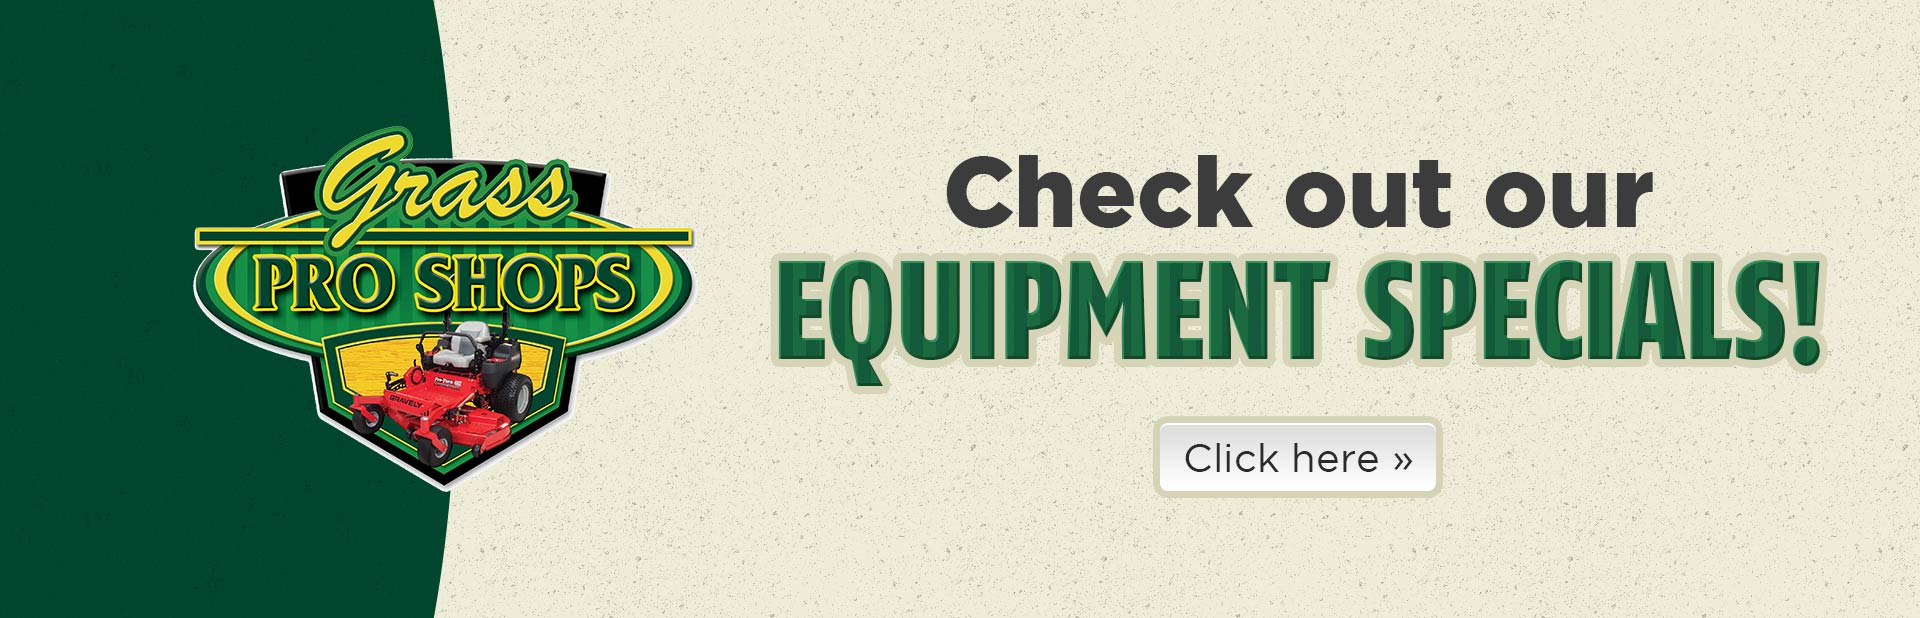 Click here to check out our equipment specials!